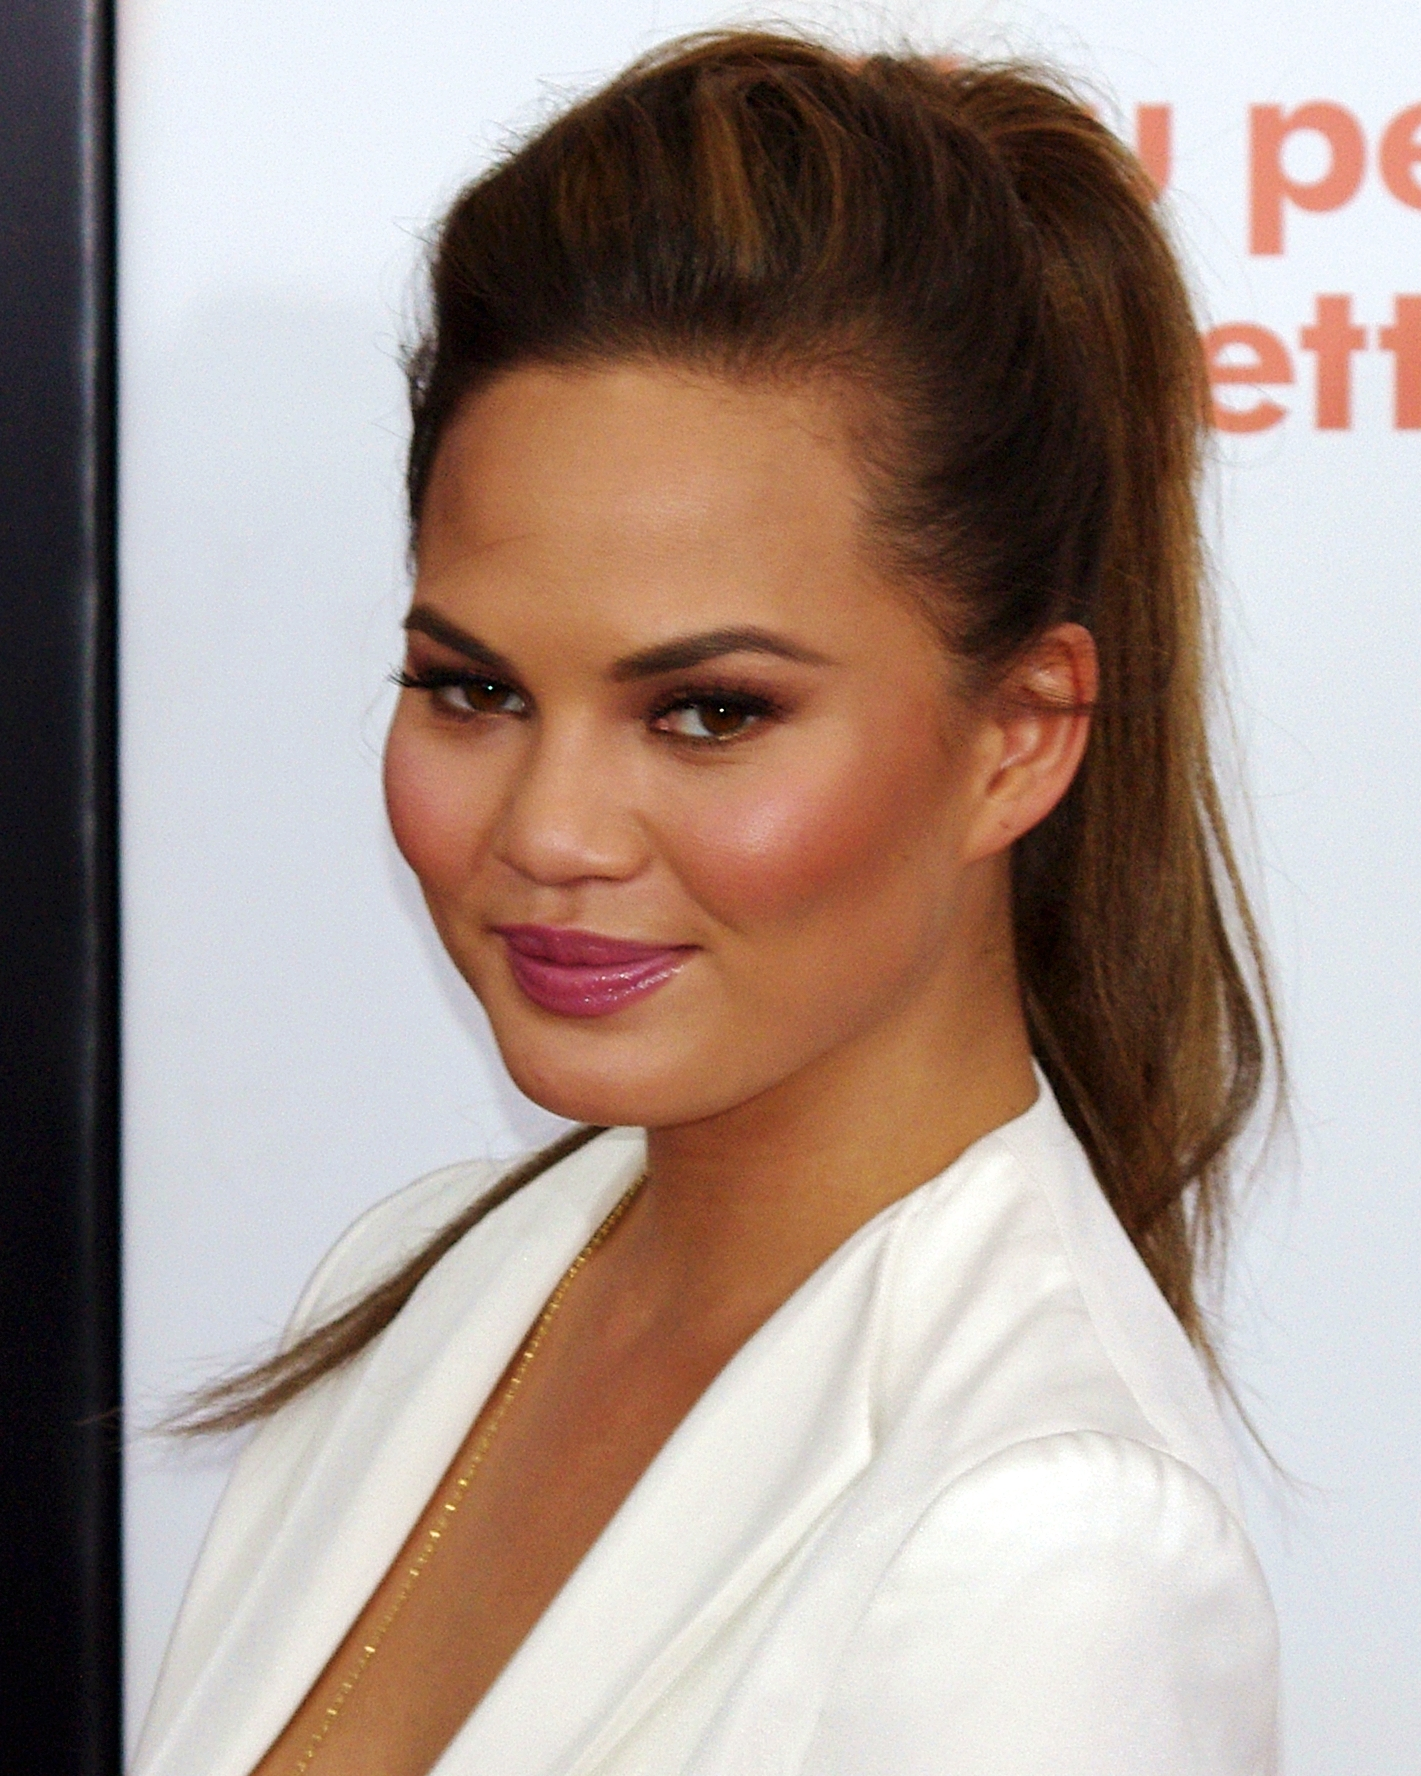 The 34-year old daughter of father (?) and mother Vilailuck Teigen Chrissy Teigen in 2020 photo. Chrissy Teigen earned a million dollar salary - leaving the net worth at 2 million in 2020